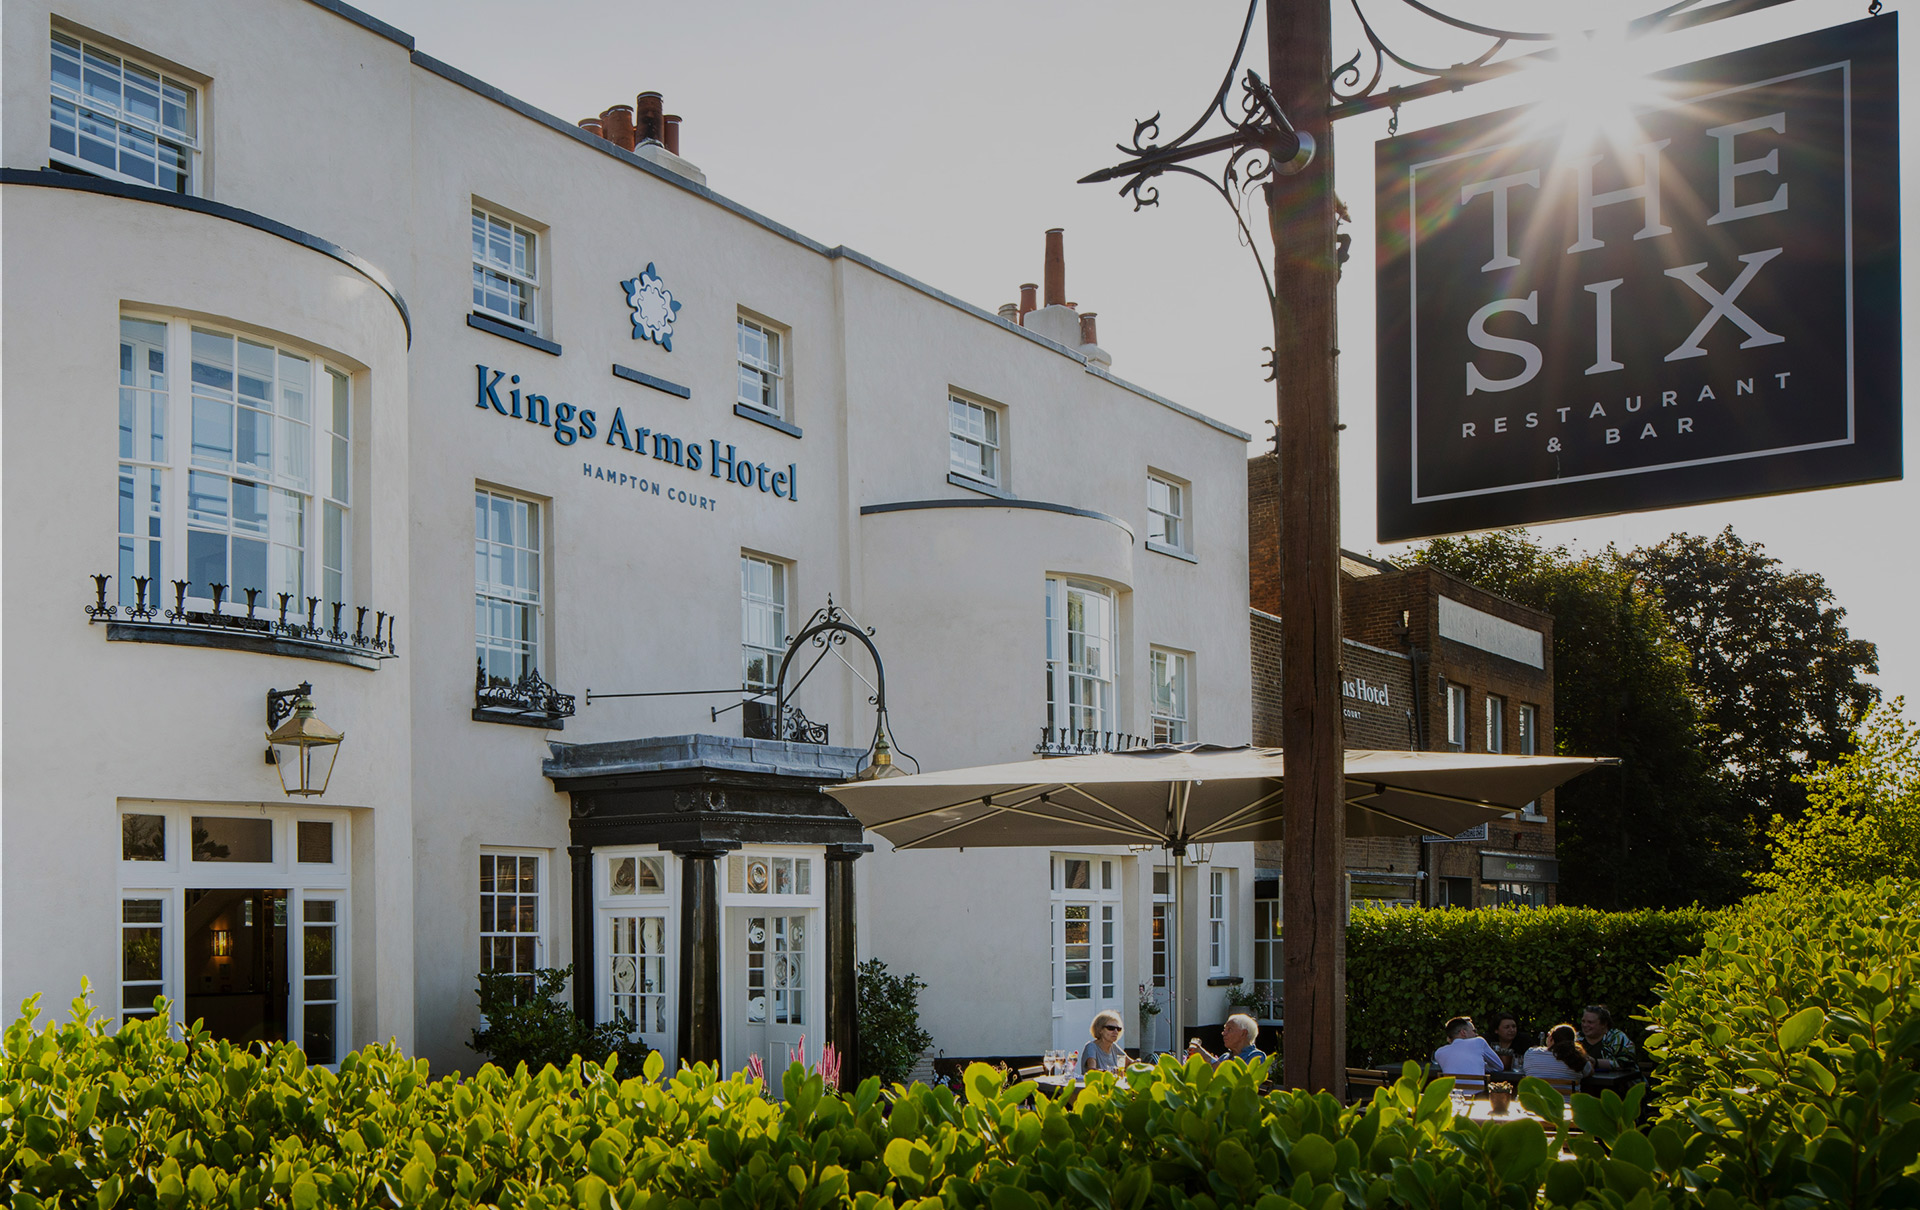 Kings arms hotel to open with michelin starred chef mark kempson this summer